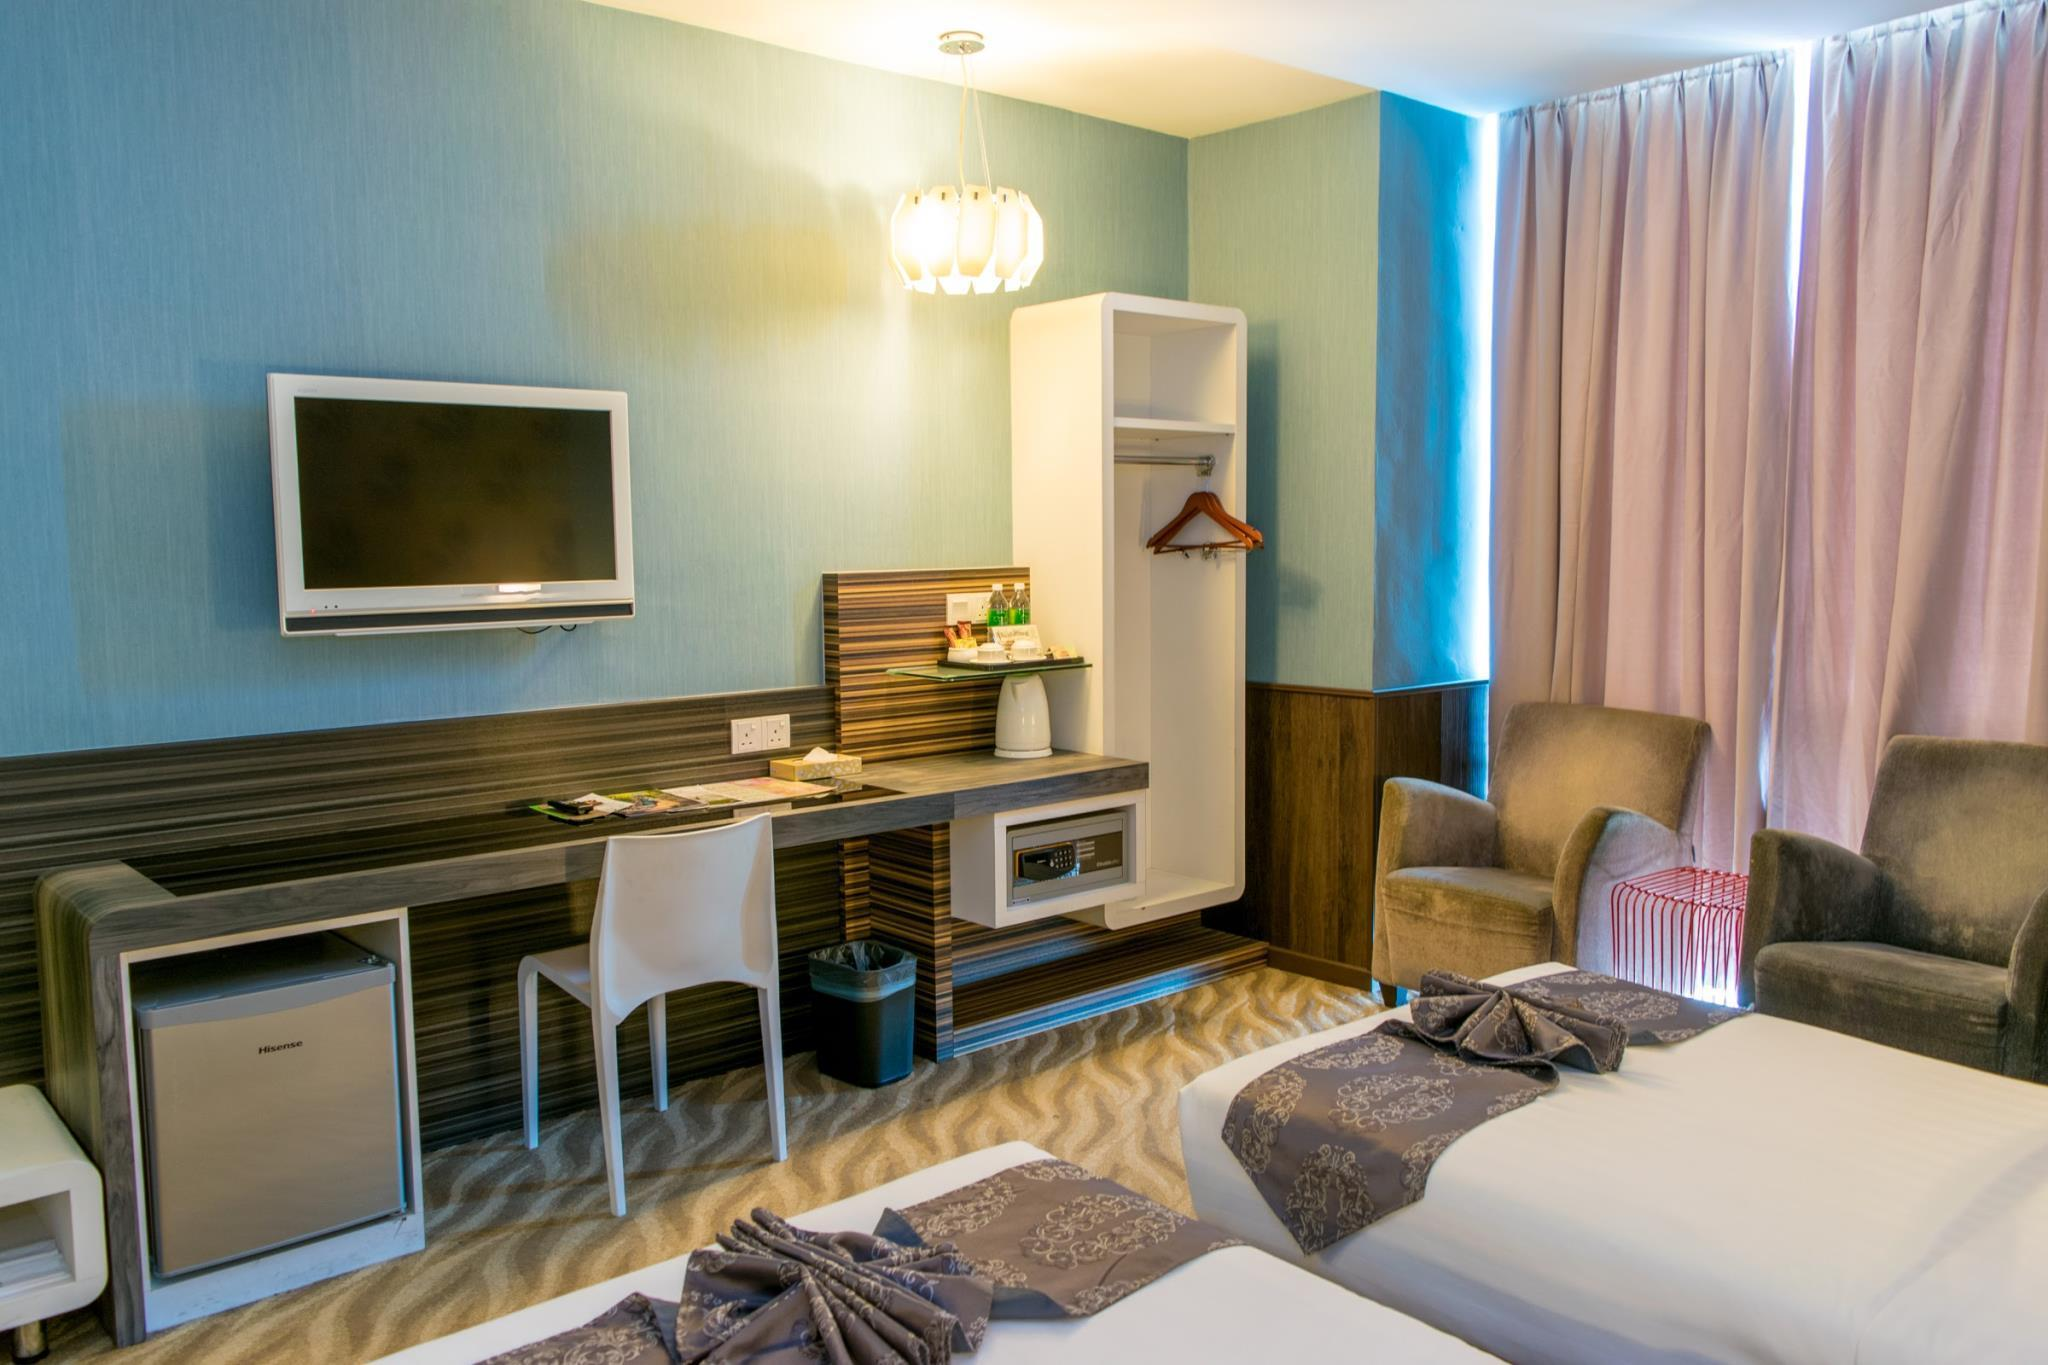 MH Hotels Ipoh - Ipoh Malaysia Hotels - Hotel reservations